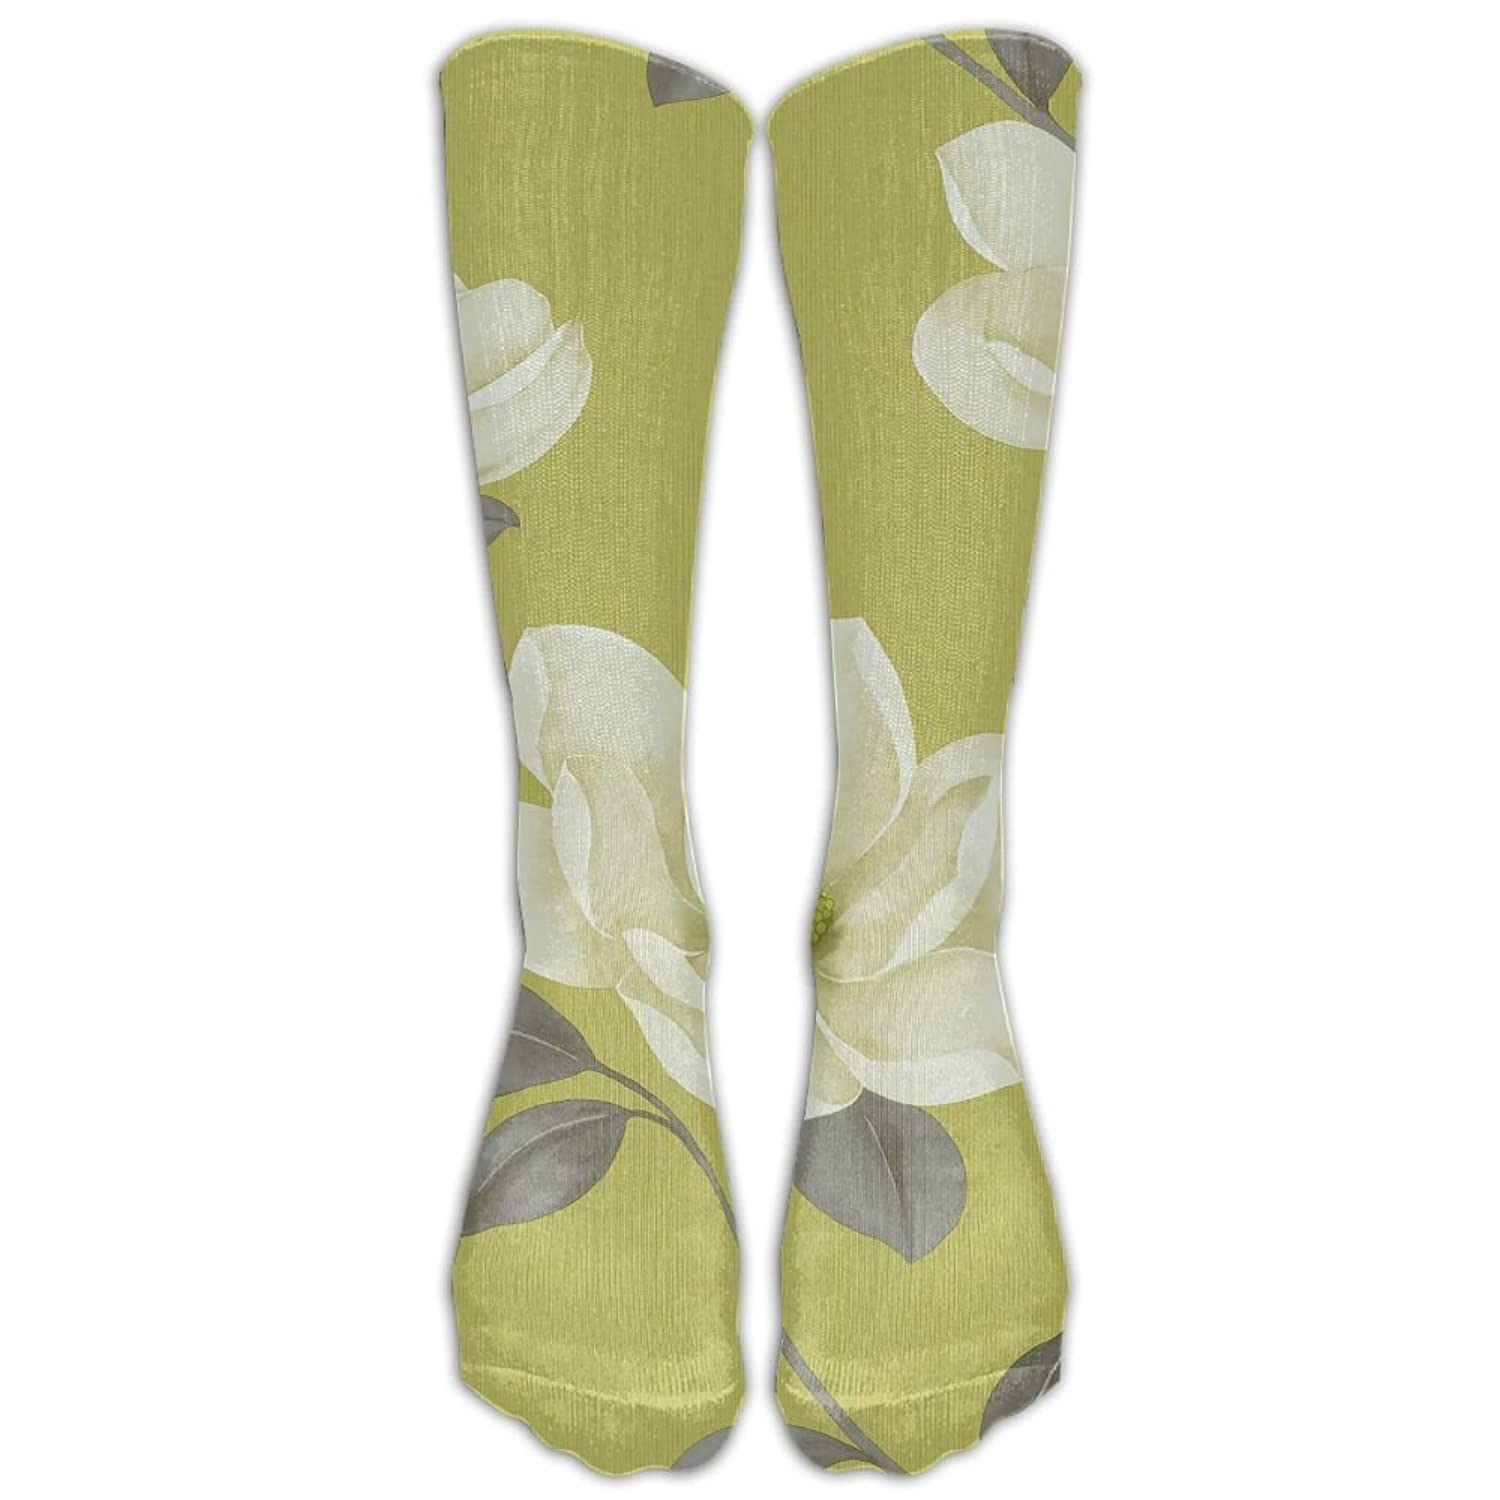 good out x thoughts on free delivery High Boots Crew Floral Designer Compression Socks ...